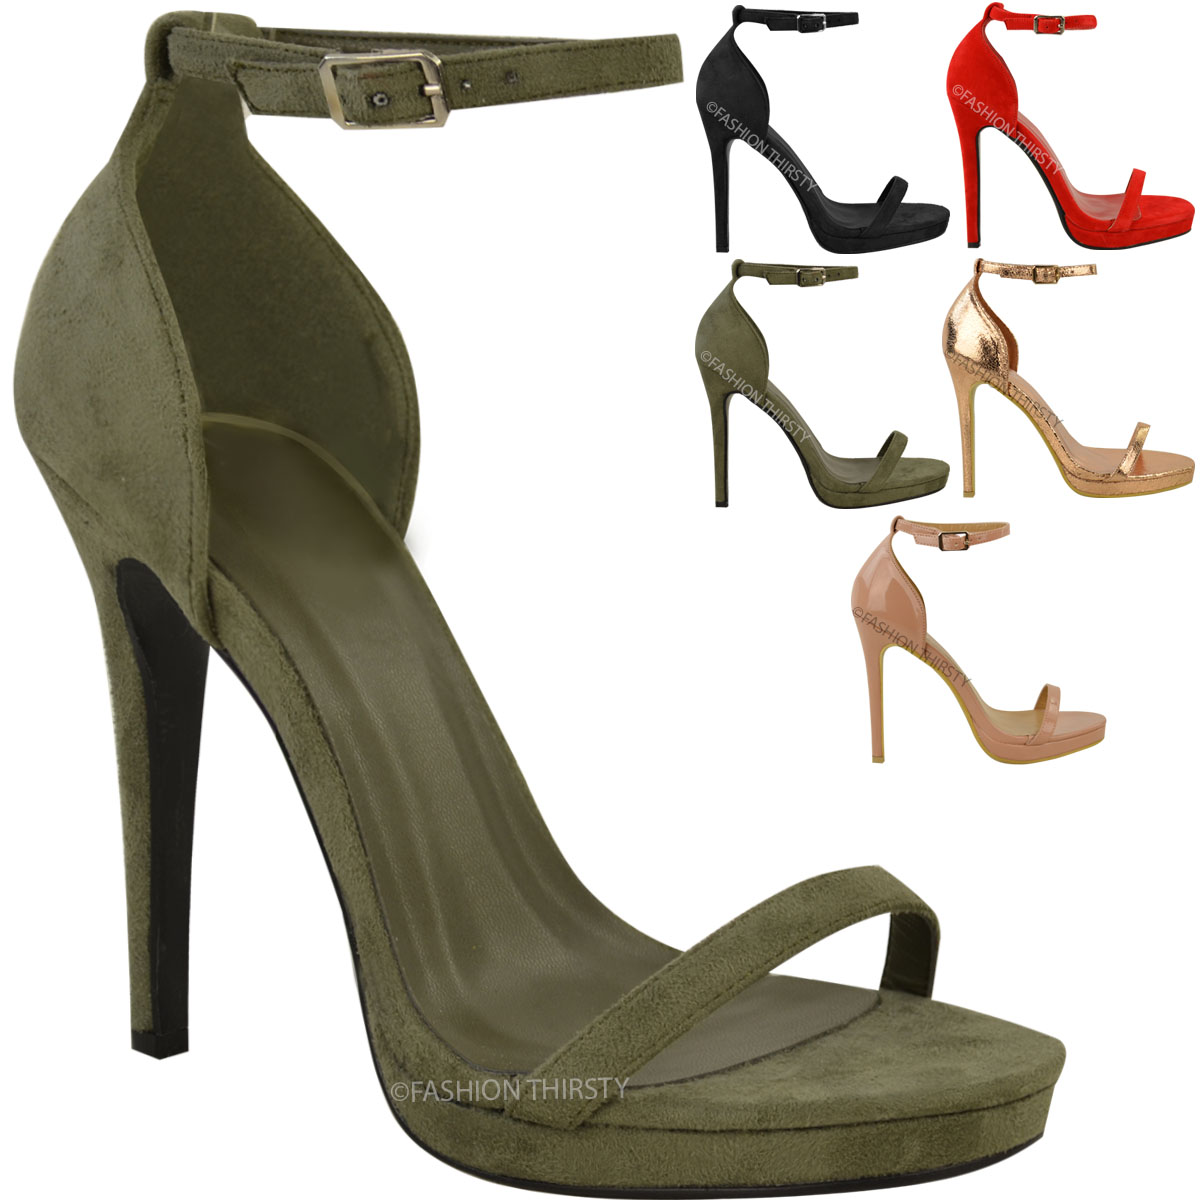 Womens Ladies High Heel Sandals Peep Toe Barely There Ankle Strappy Shoes Size